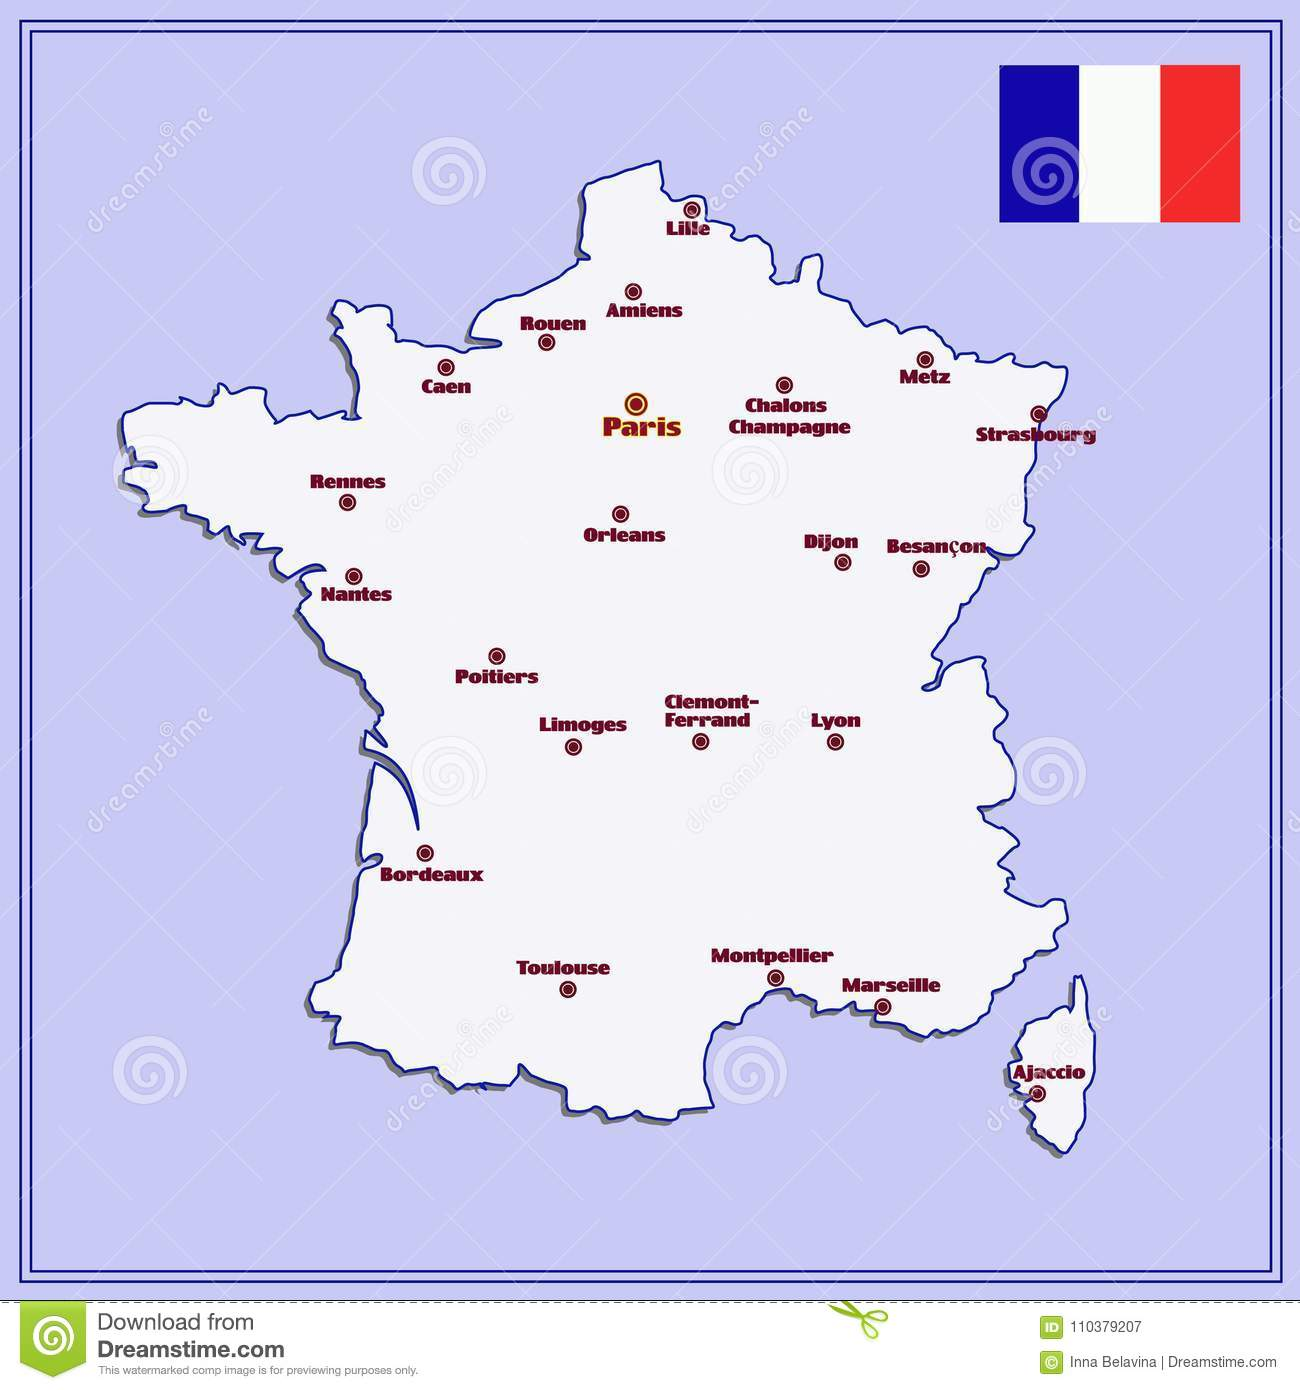 Map Of France With Big Cities  Stock Illustration   Illustration of likewise AA Big Road Atlas France 2019  Road Map  A3   RRP  £9 99 in addition large map of france with cities – lookyourbest info besides 40 best French   Maps images on Pinterest in 2018   French cl furthermore Buy France Maps   Atlases   eBay also The 36 maps that paint the picture of France   The Local furthermore World Map France Fresh Where Is Big Size Globe 7bit In Of The in addition maps of dallas  South of France Map as well  moreover digital vector world map  Carte Française du Monde Politique  World in addition France Map Stock Photos  Images   Photography   Shutterstock in addition  moreover  also  in addition AA 2018 Big Road Atlas France   Road Maps at The Works together with . on big map of france